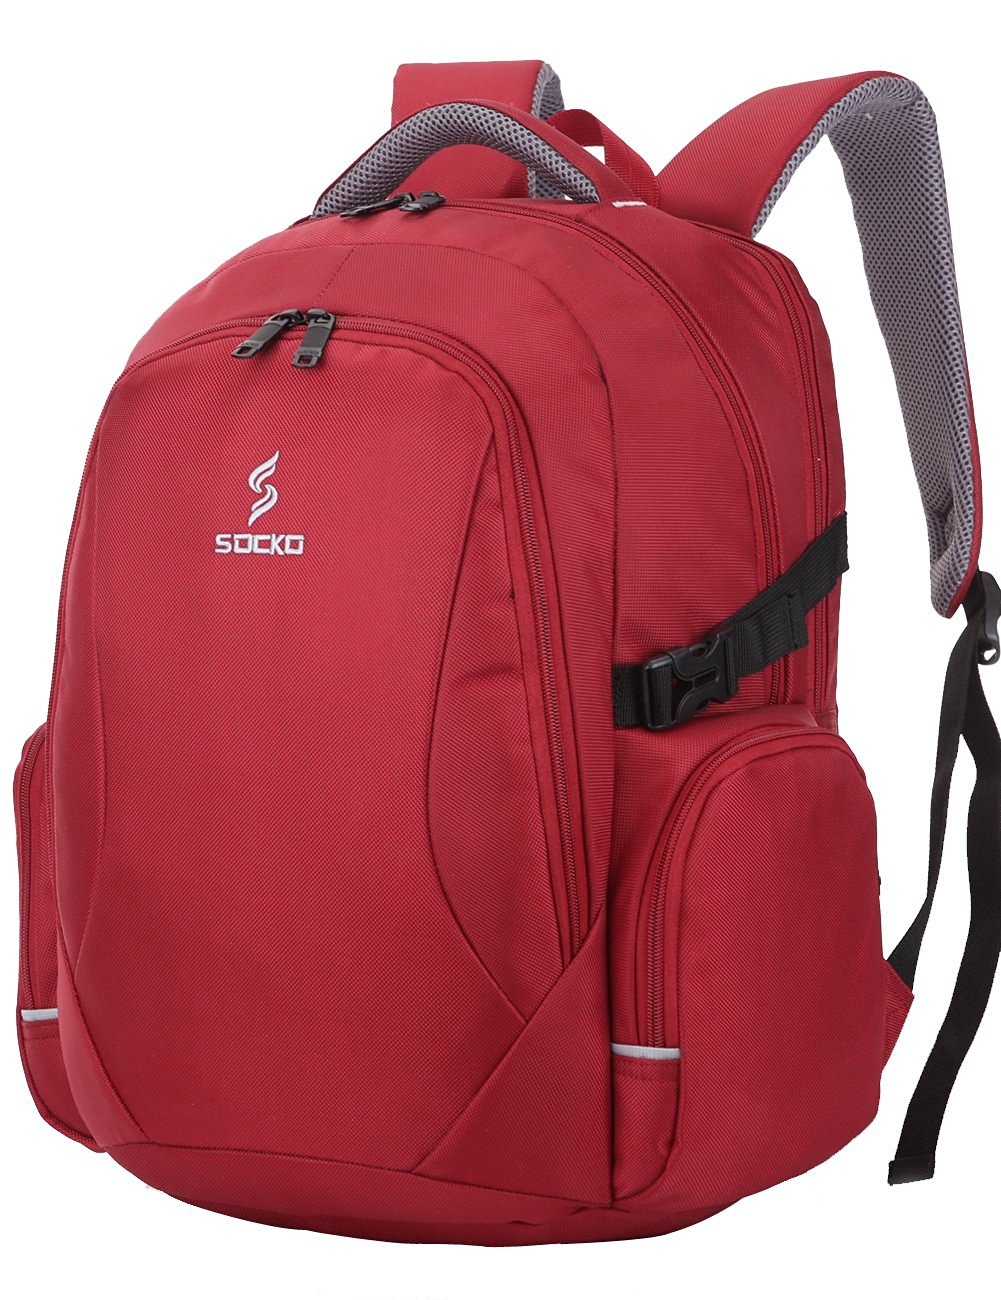 BRINCH® Deluxe Lightweight Durable Waterproof Multifunctional Nylon Backpack For College Travel Business Compus Knapsack Laptop Backpack Pack for Up To 15.6 Inch Laptop / Notebook / MacBook / Chromebook / iPad (Red)